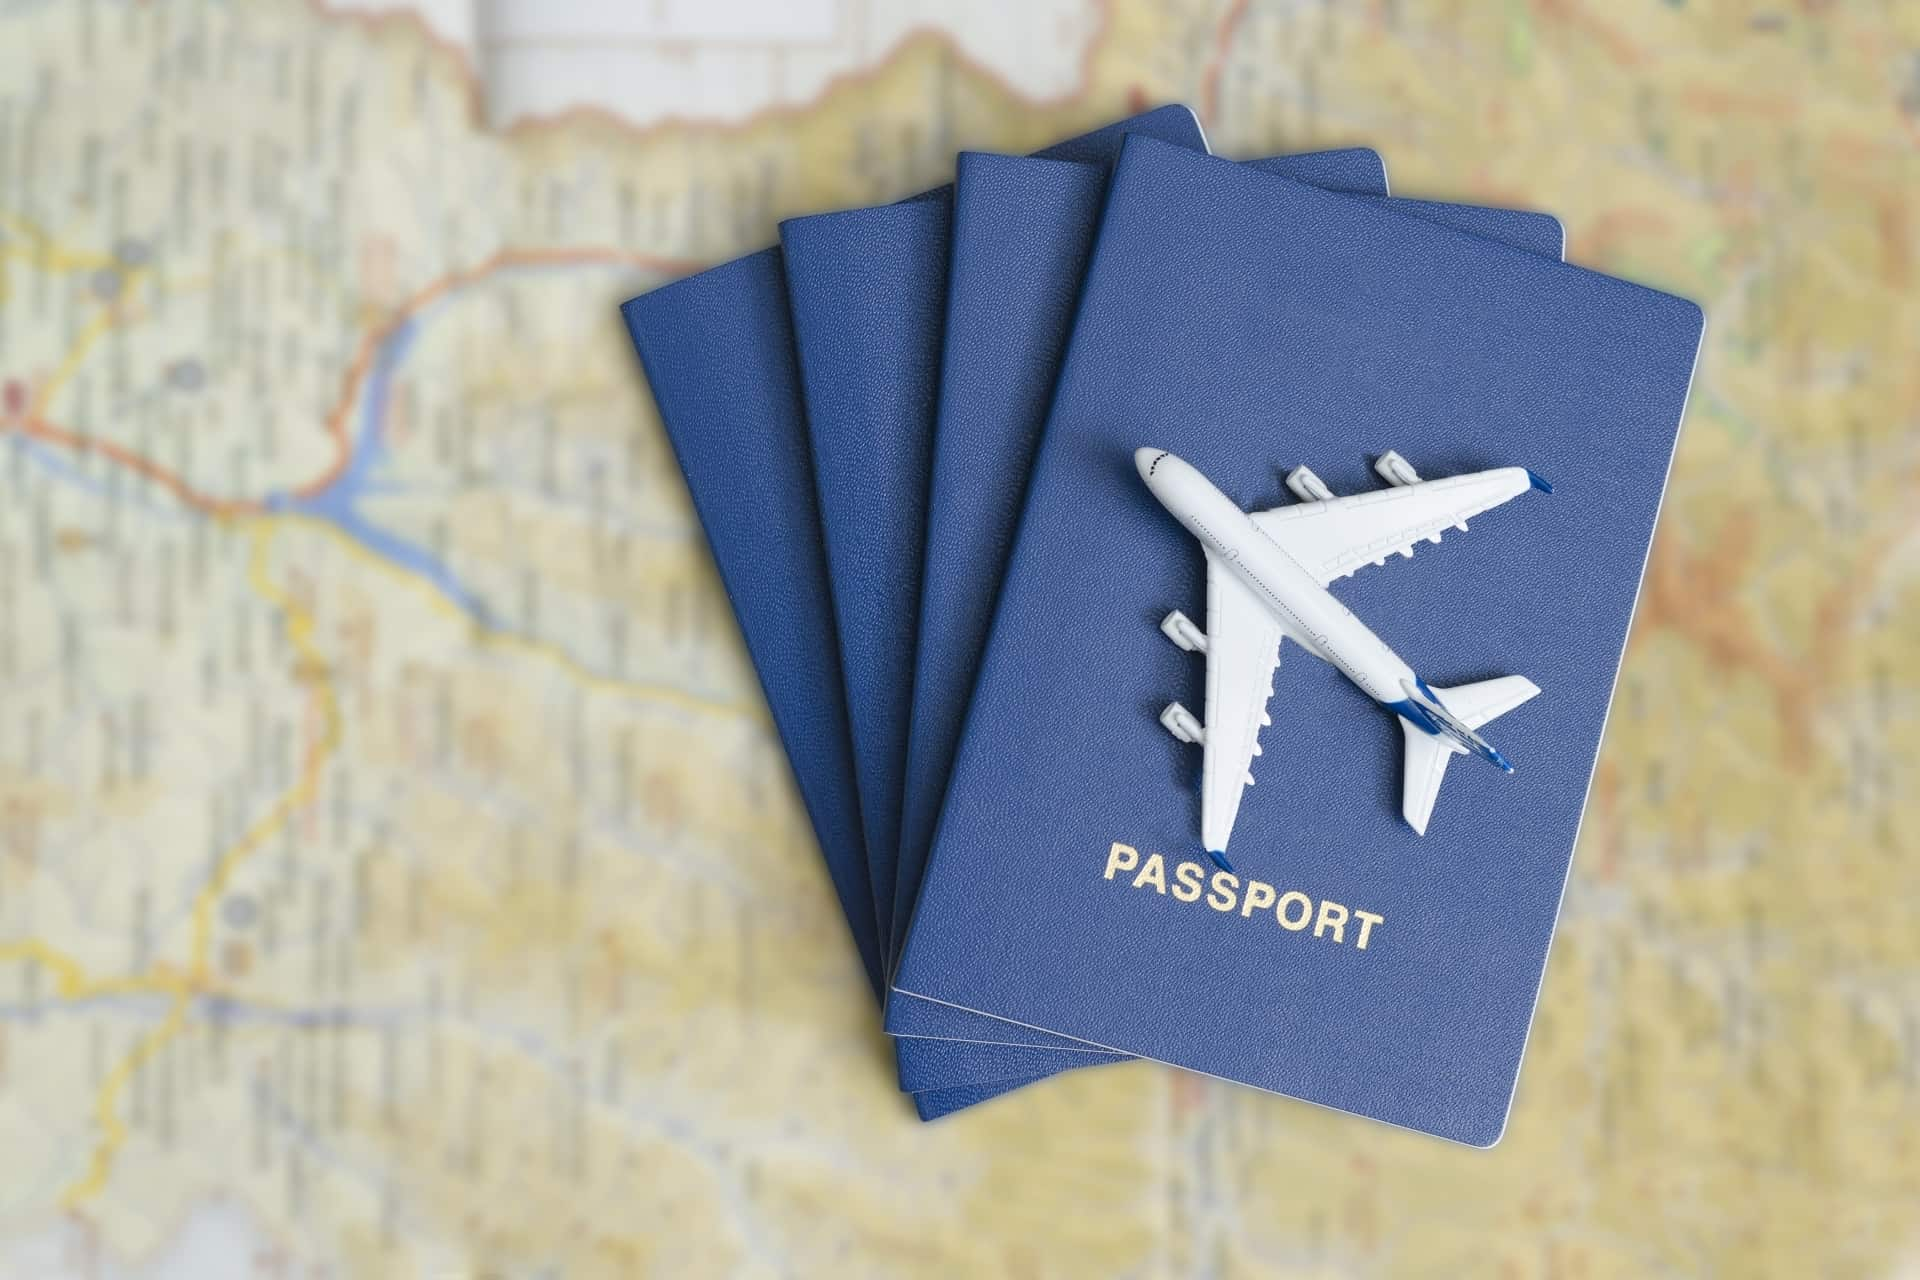 VISA AND INFORMATION OBLIGATION OF THE TRAVEL AGENCY